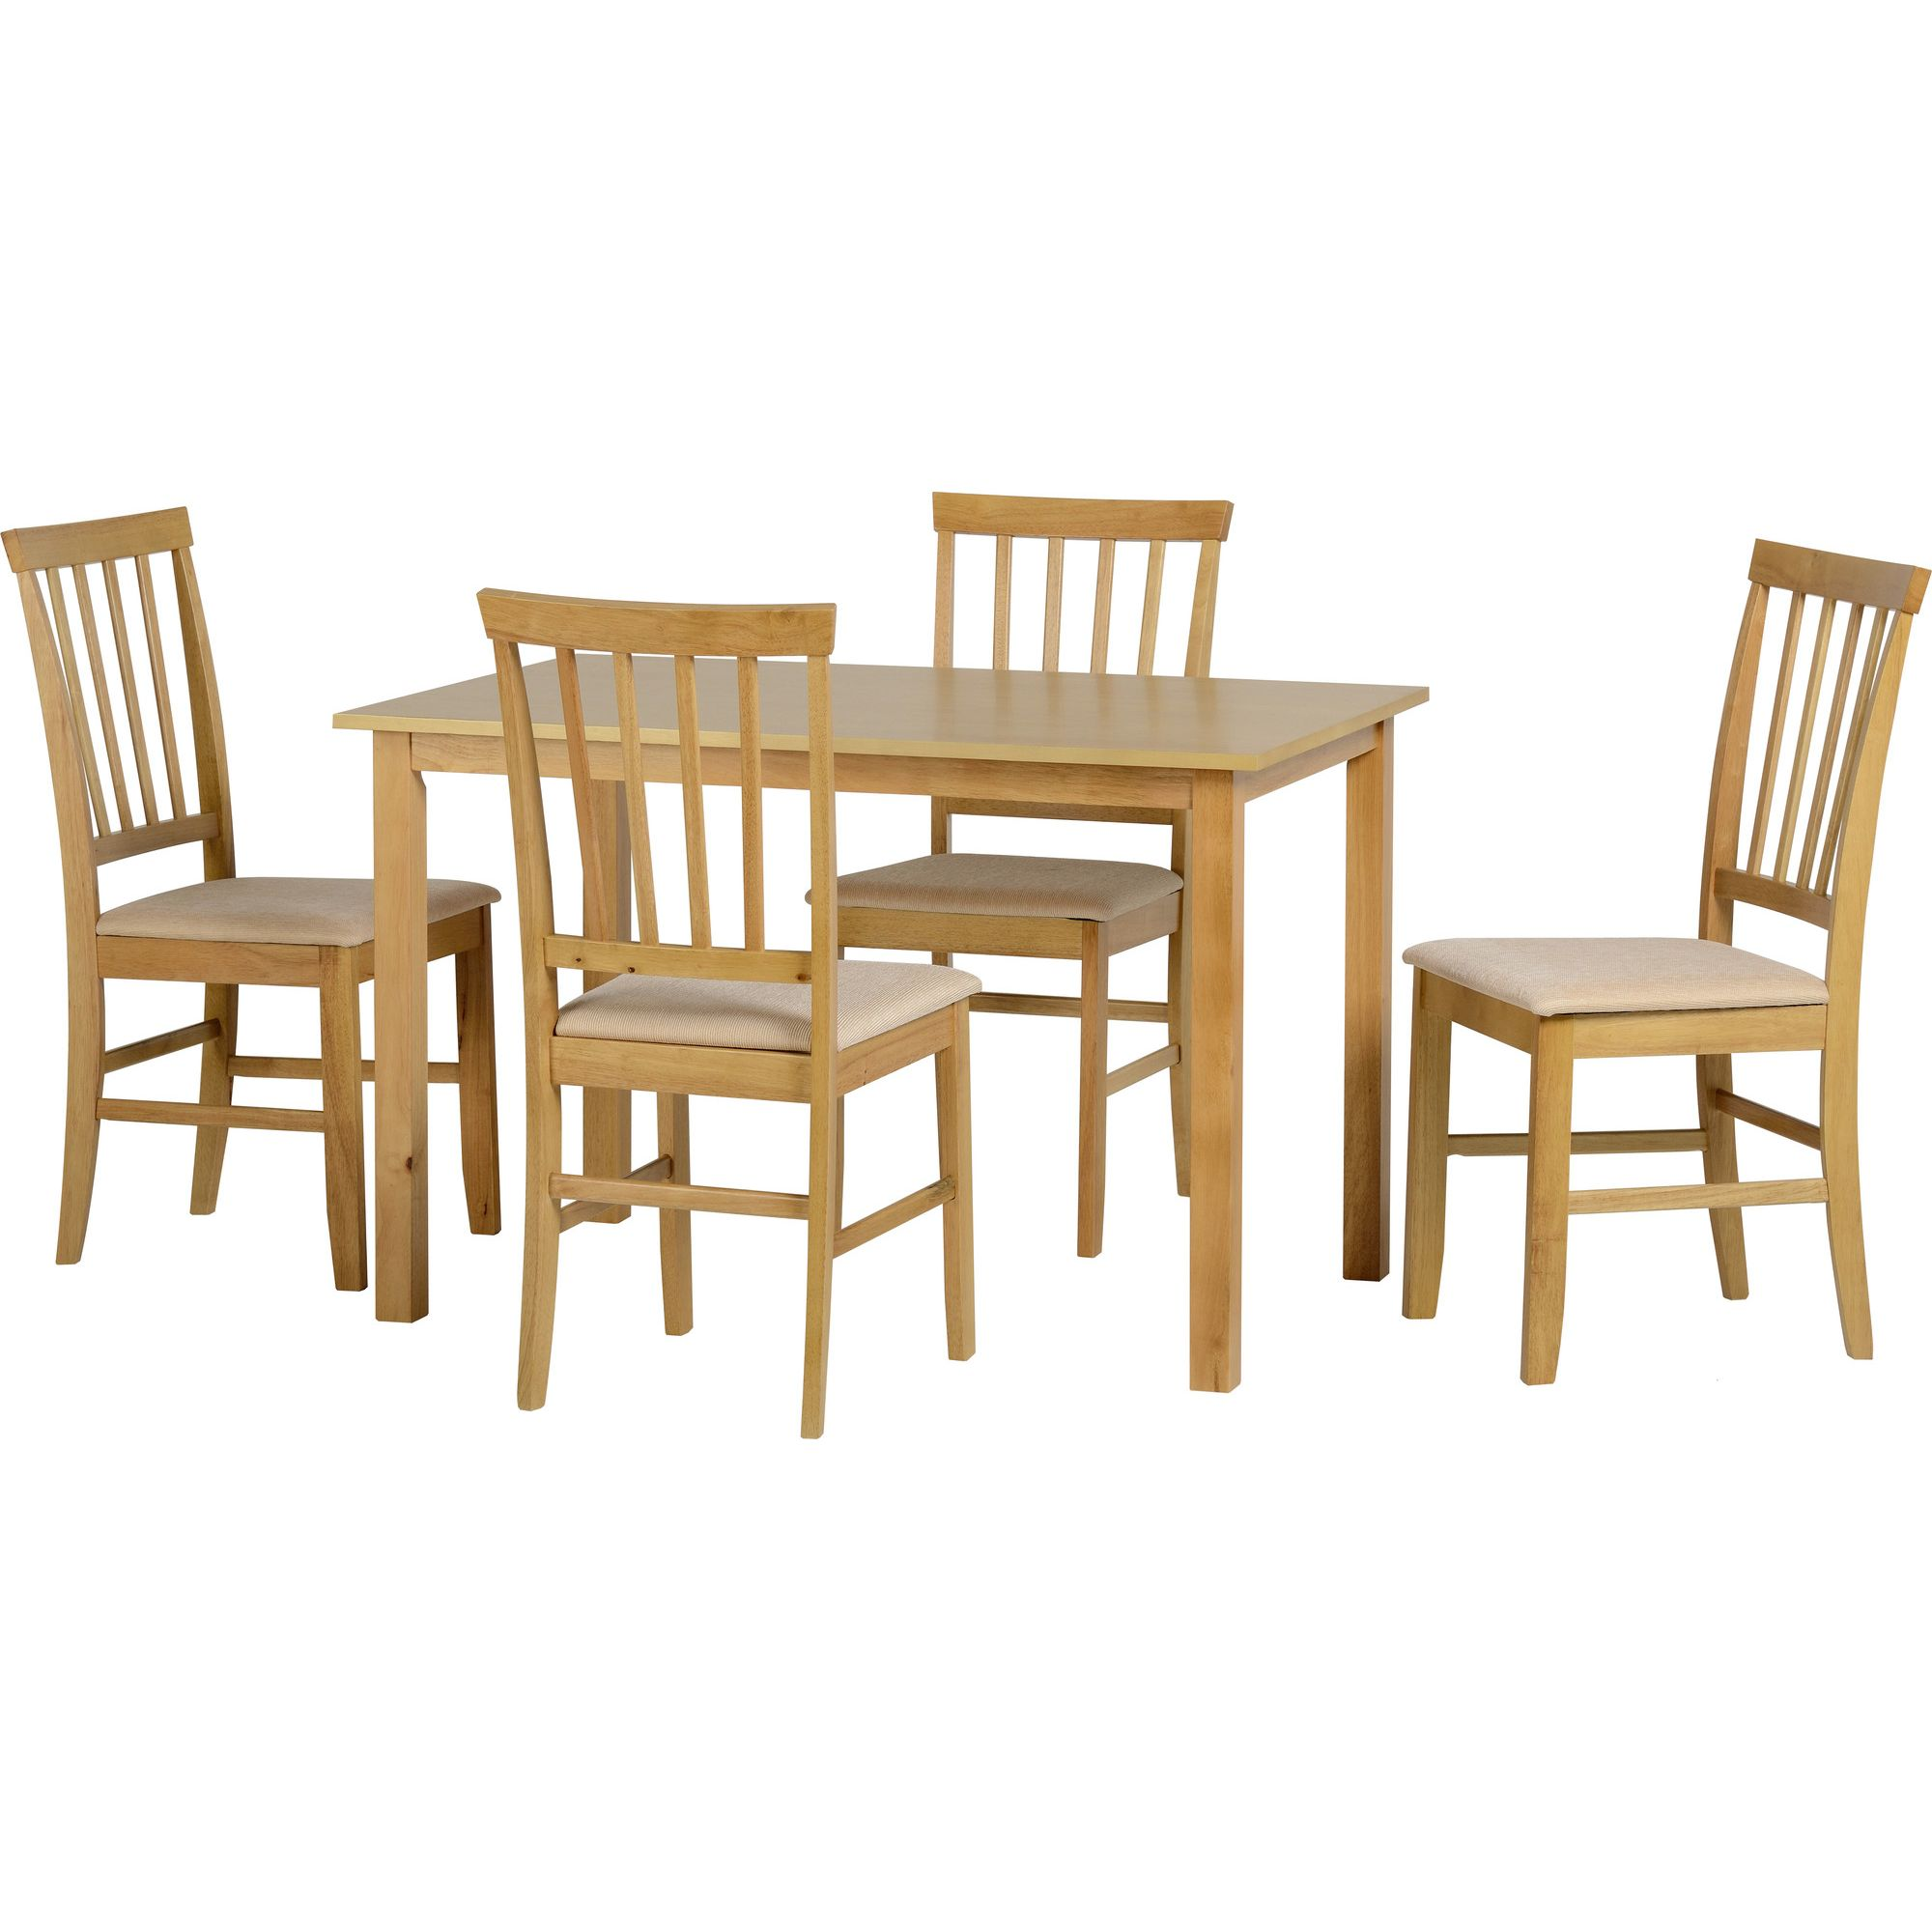 Home Essence Selina 5 Piece Dining Set - with 4 chairs at Tesco Direct